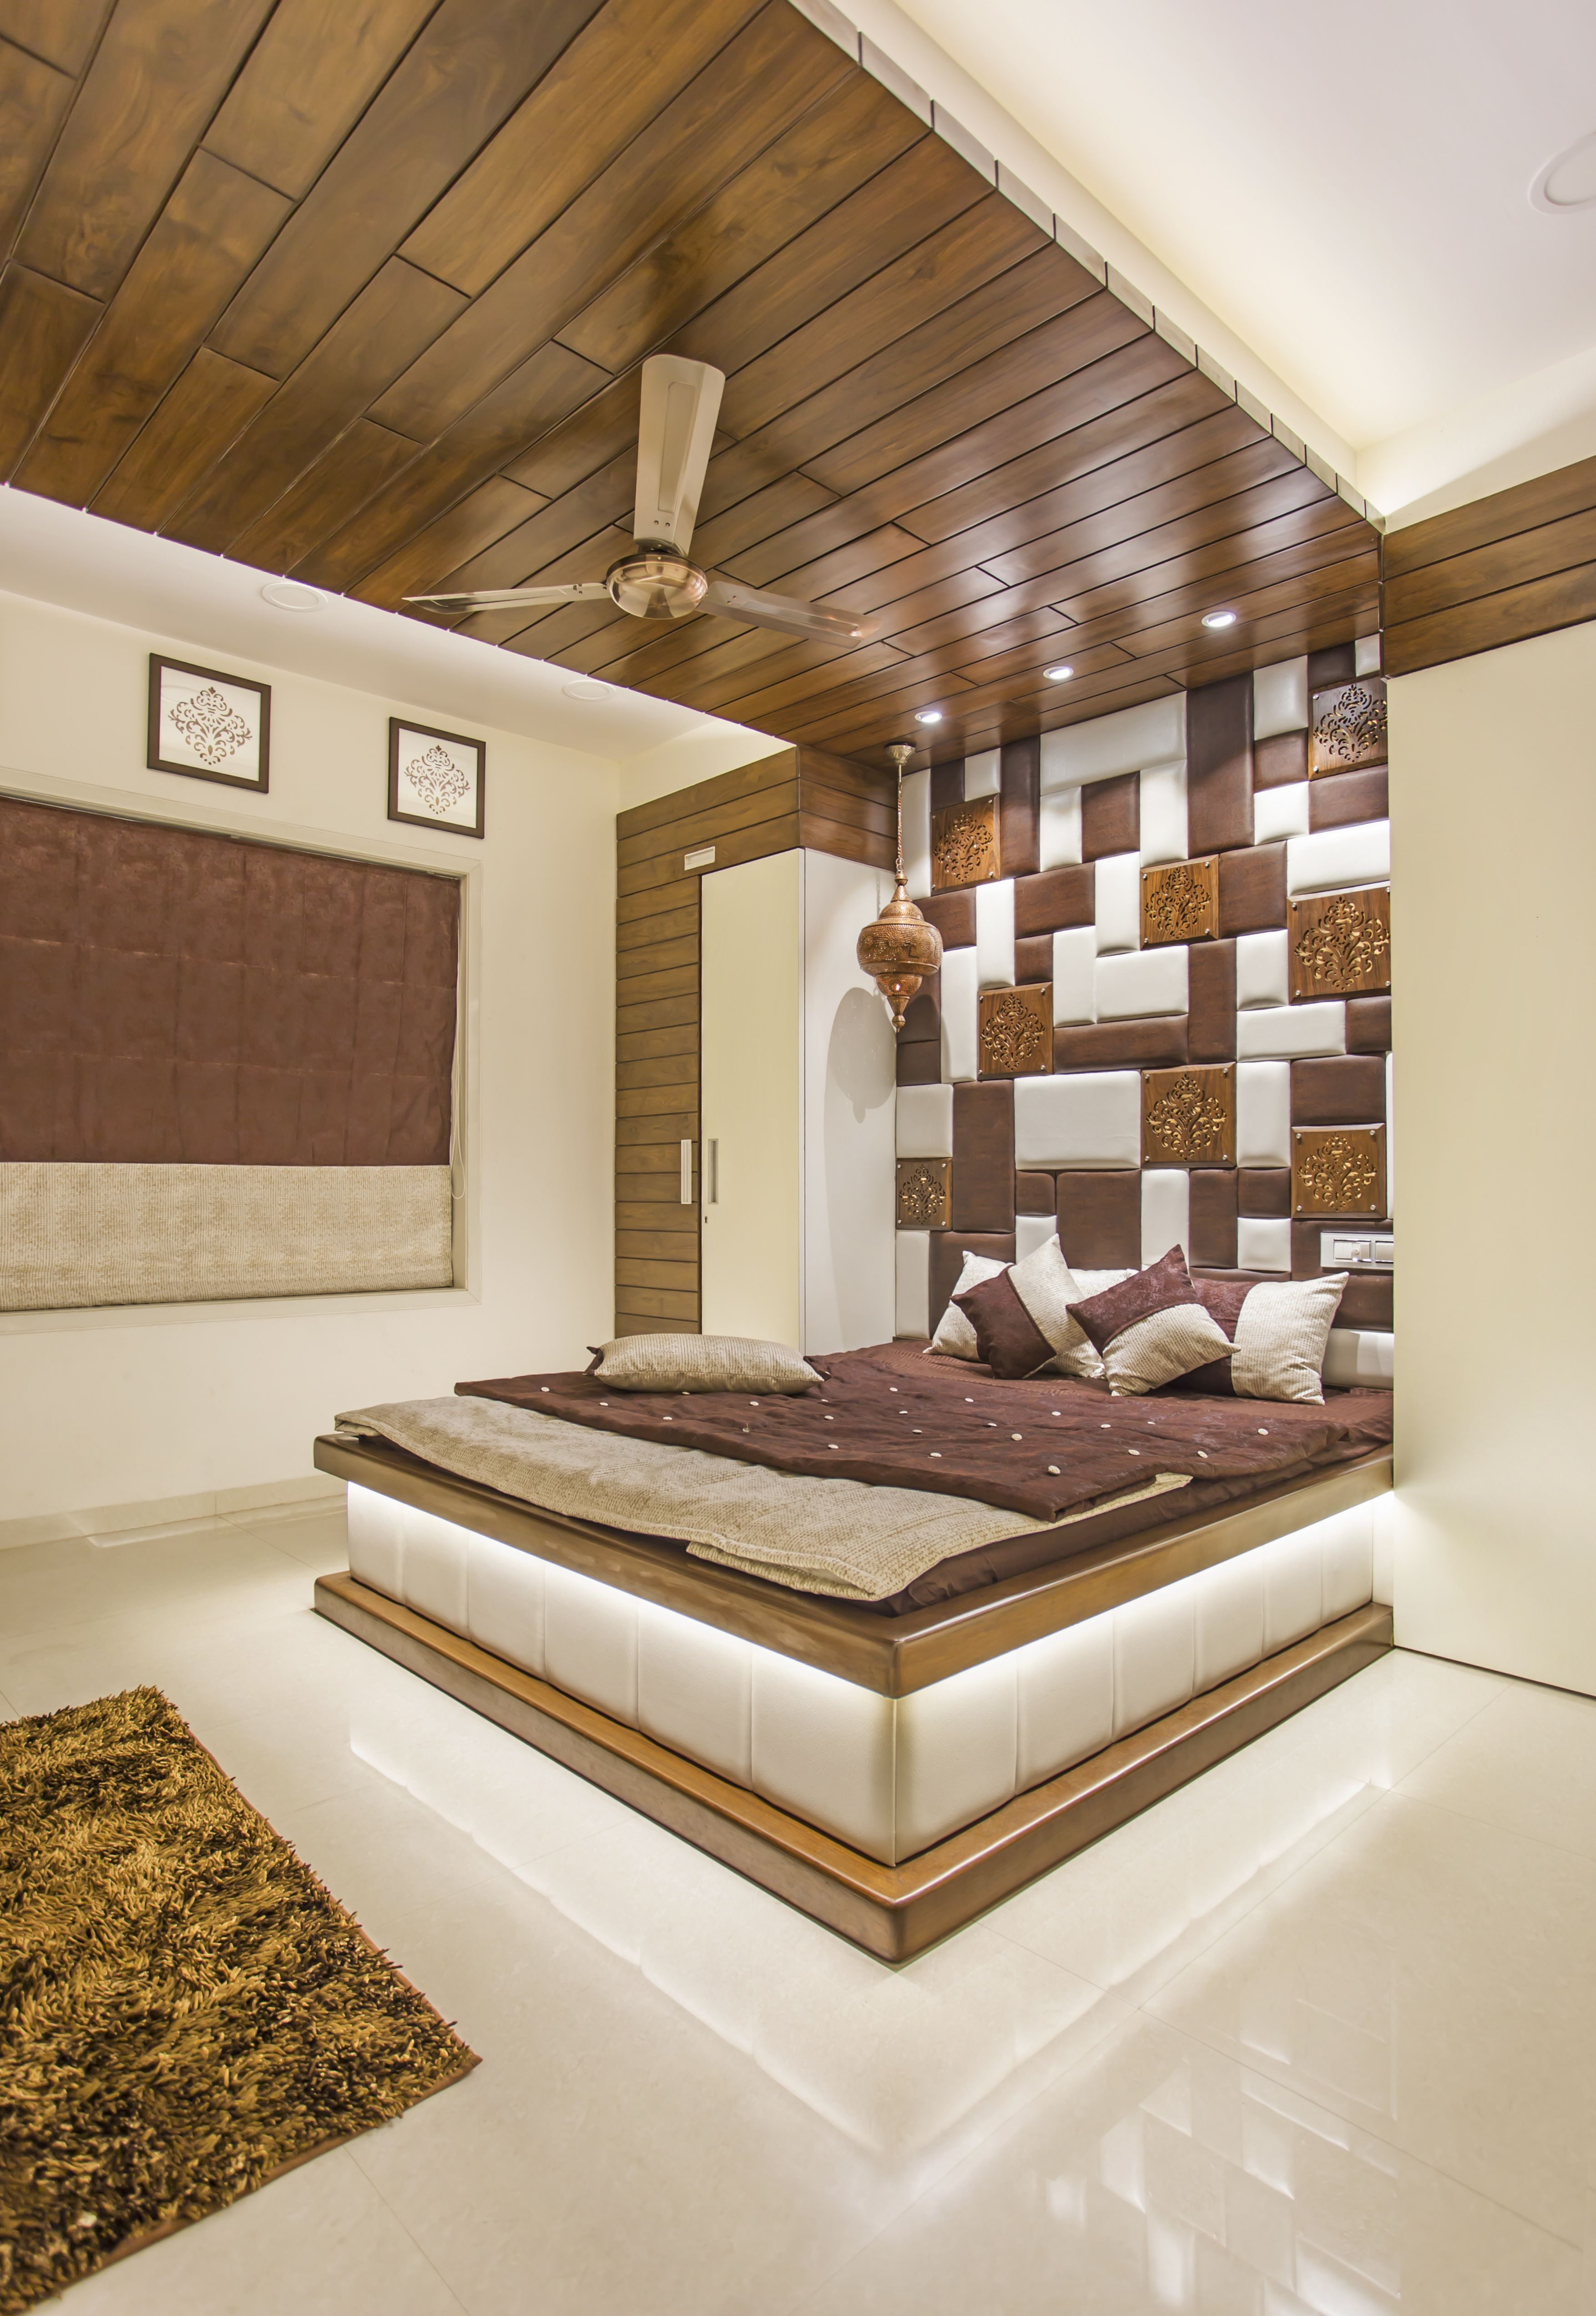 Platform Bed Ideas Believe Platform Beds Are Simply For Modern Style Bedrooms Think Again Ceiling Design Bedroom Bedroom False Ceiling Design Bedroom Design